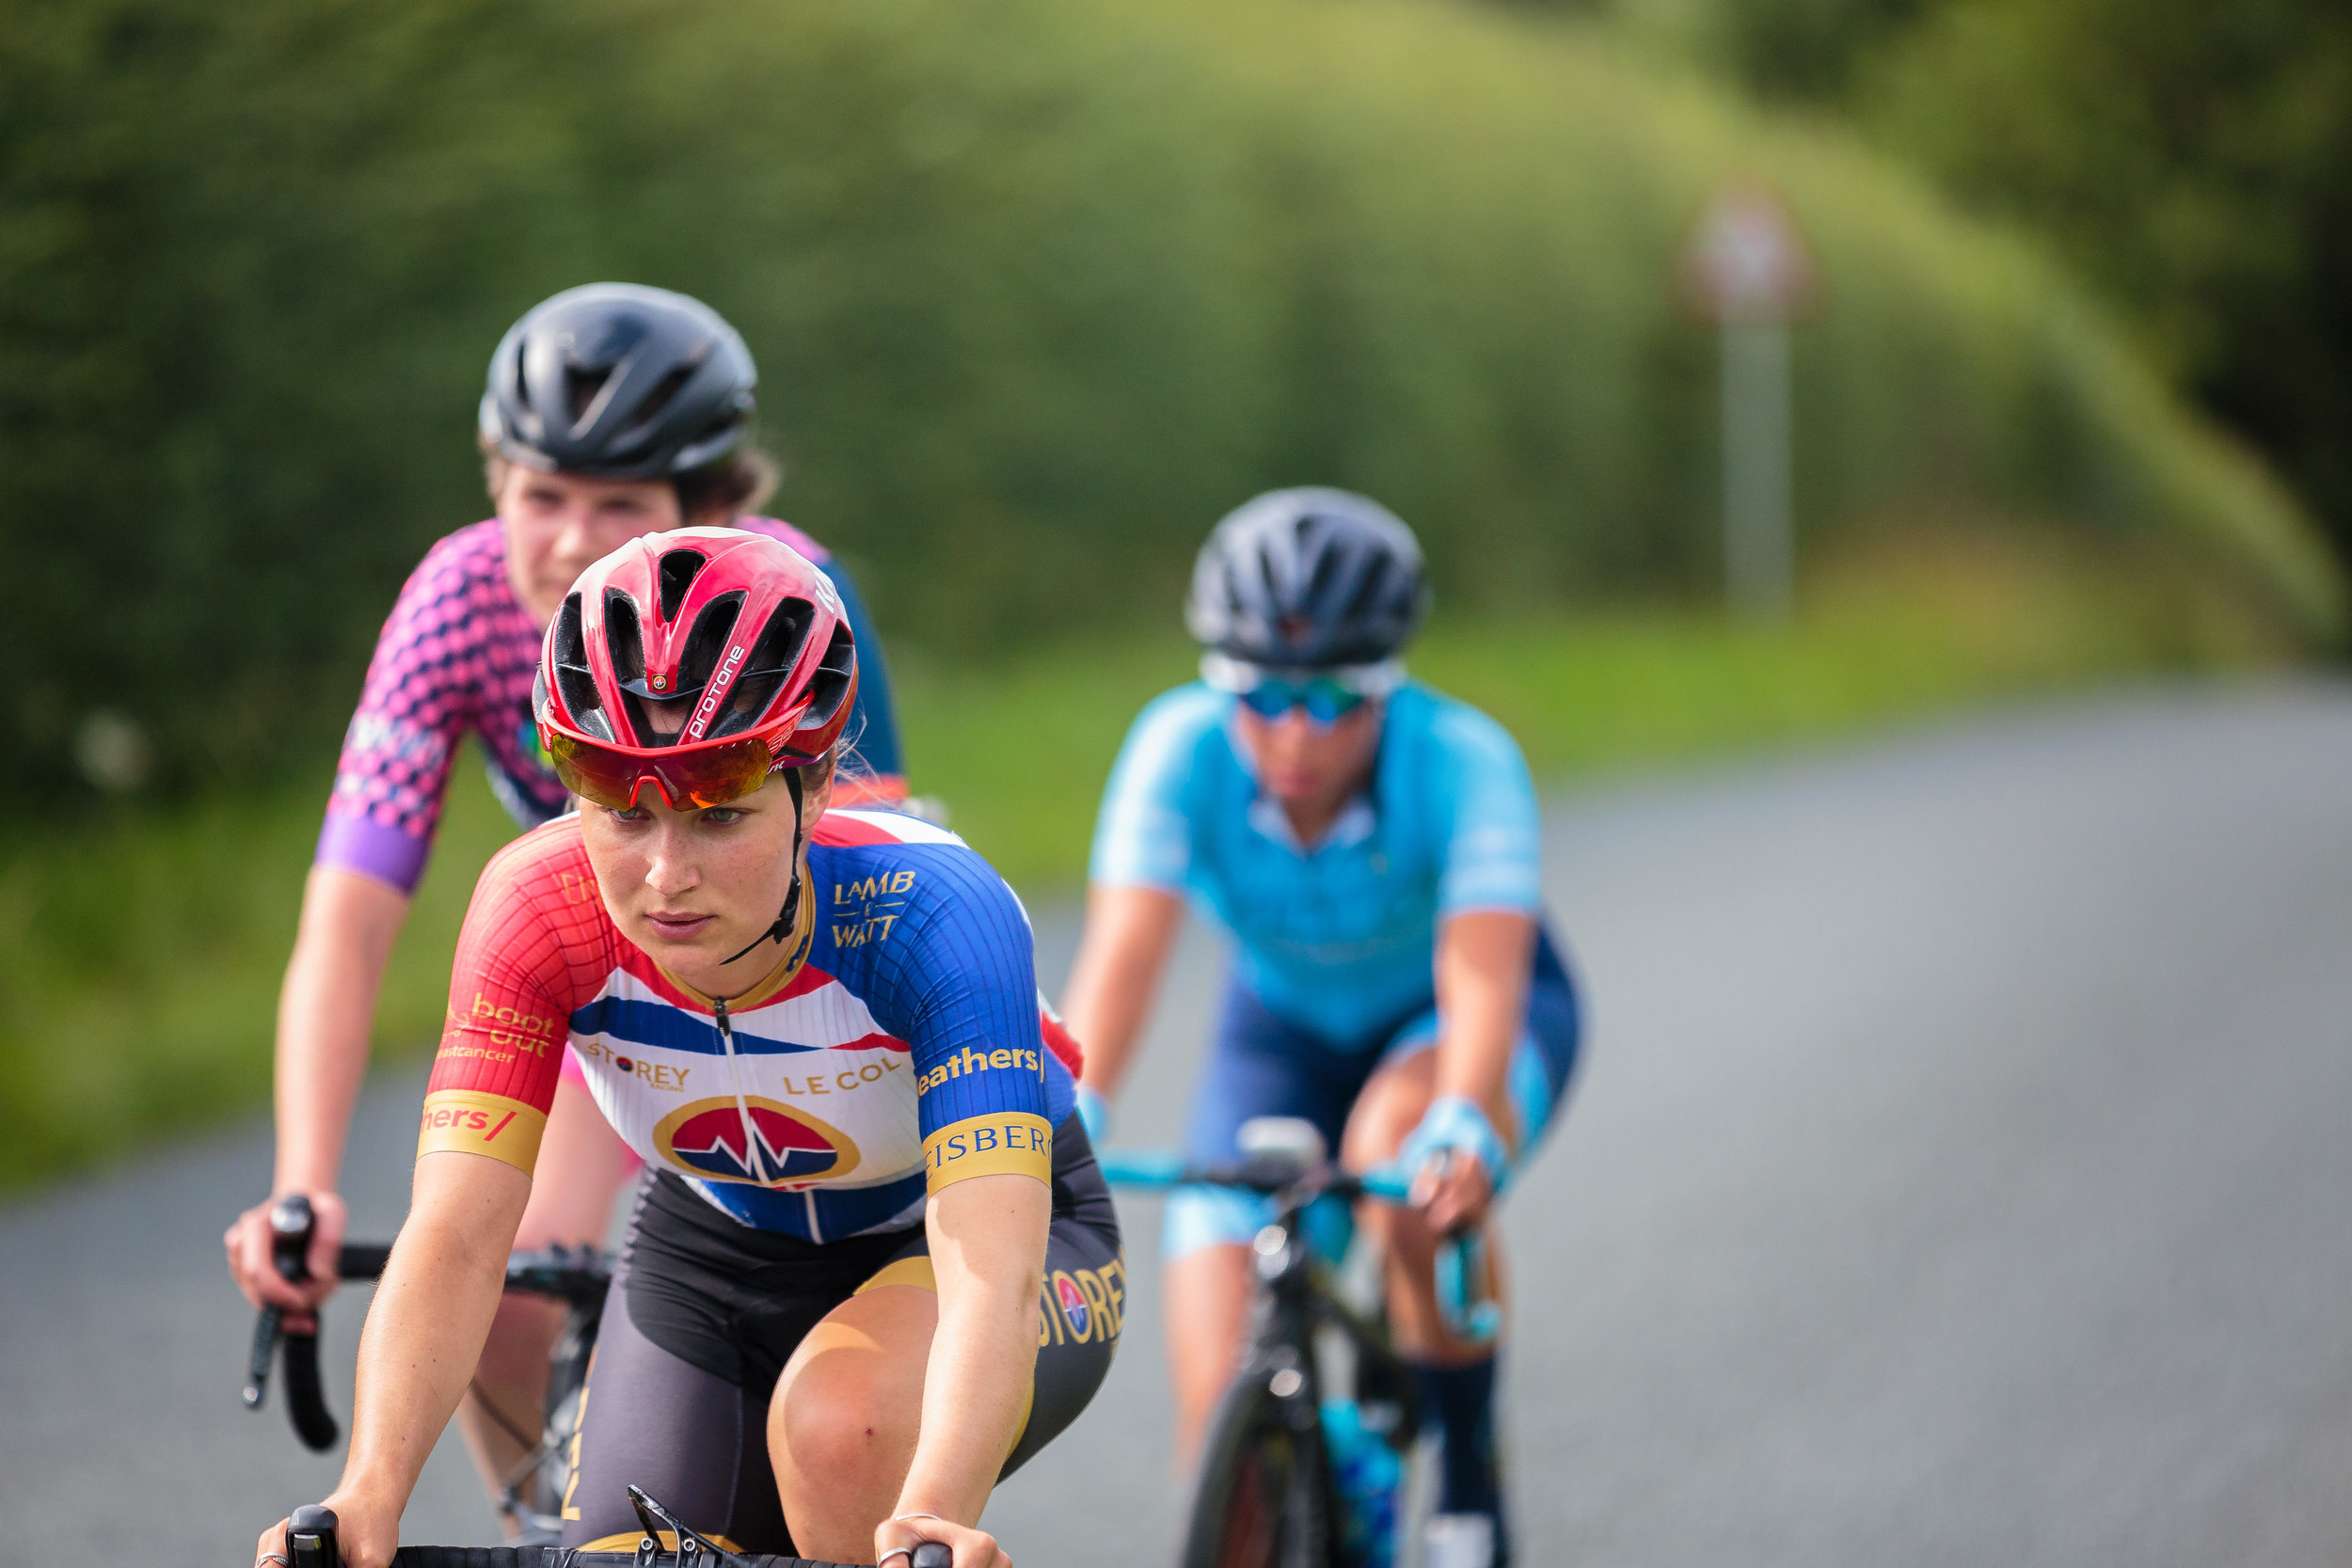 A Small Group of Women Cycling